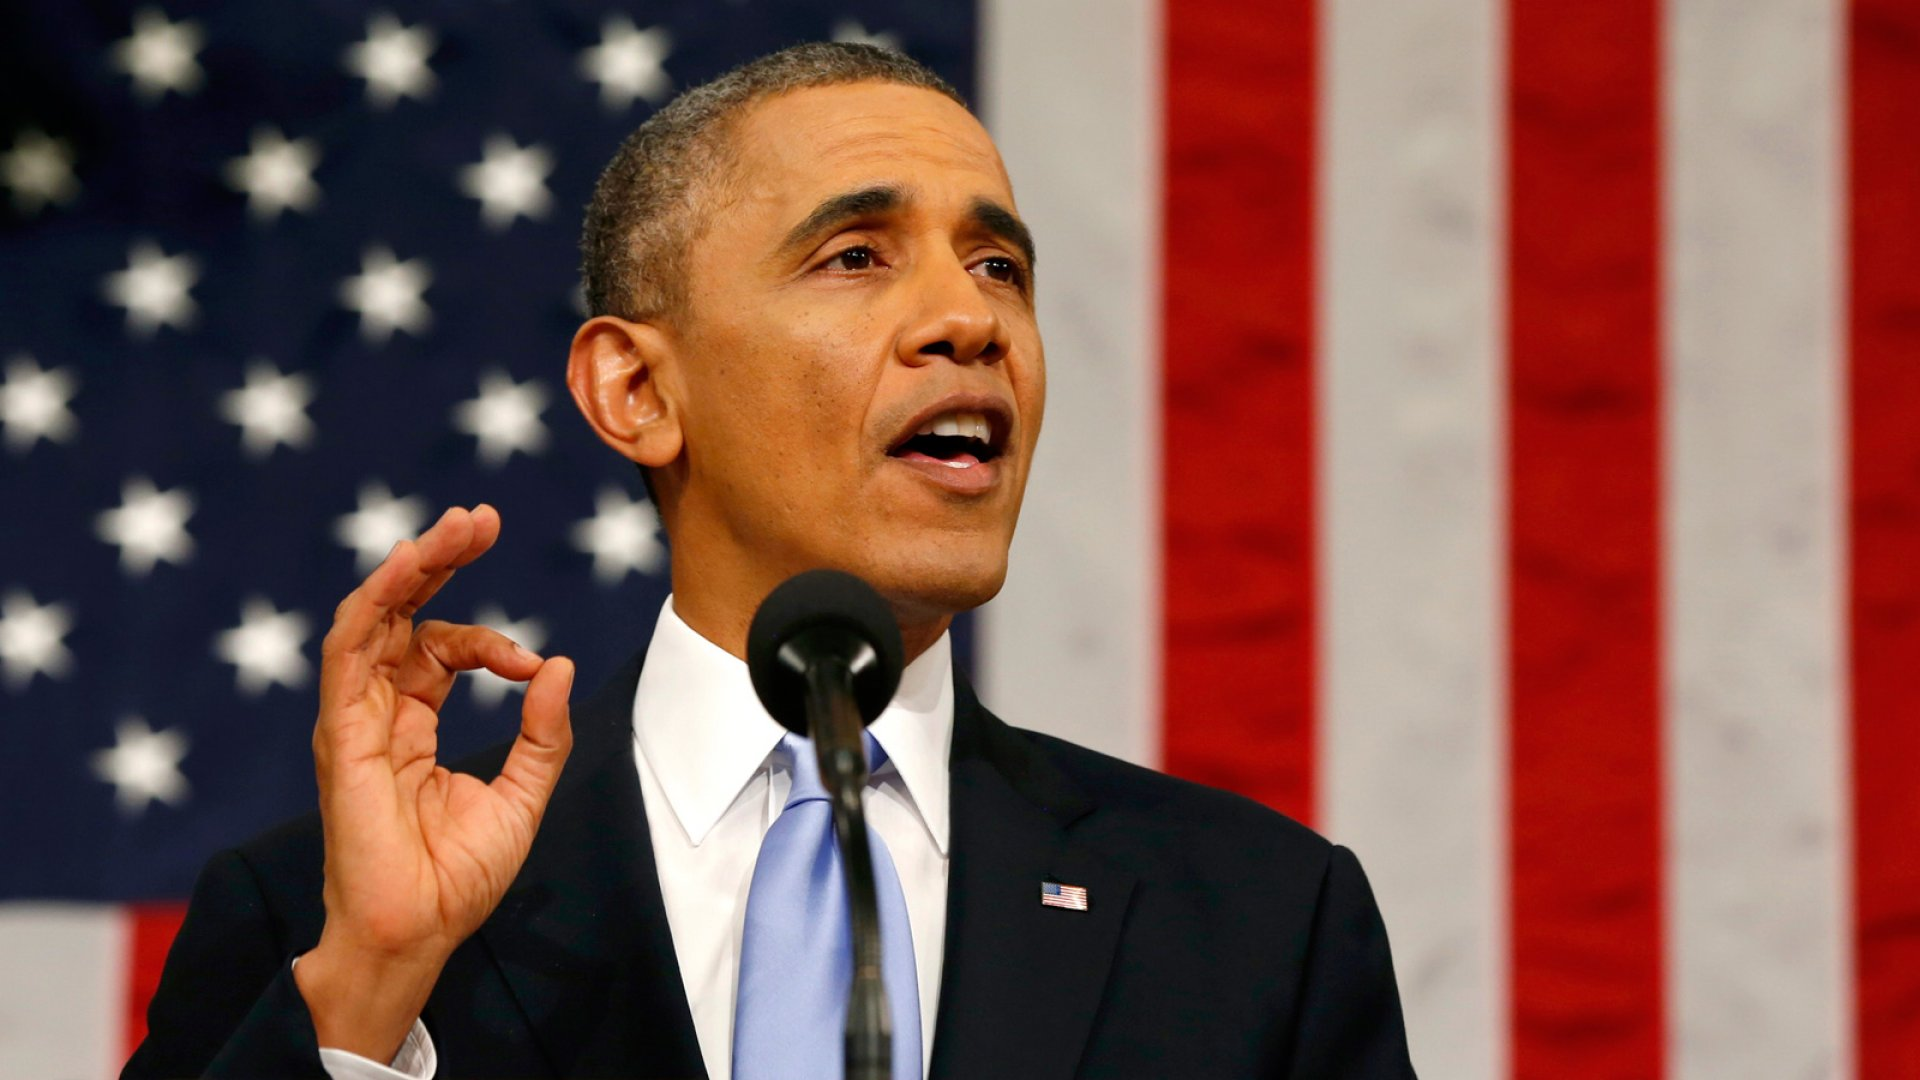 How Obama Would Build a Middle-Class Economy